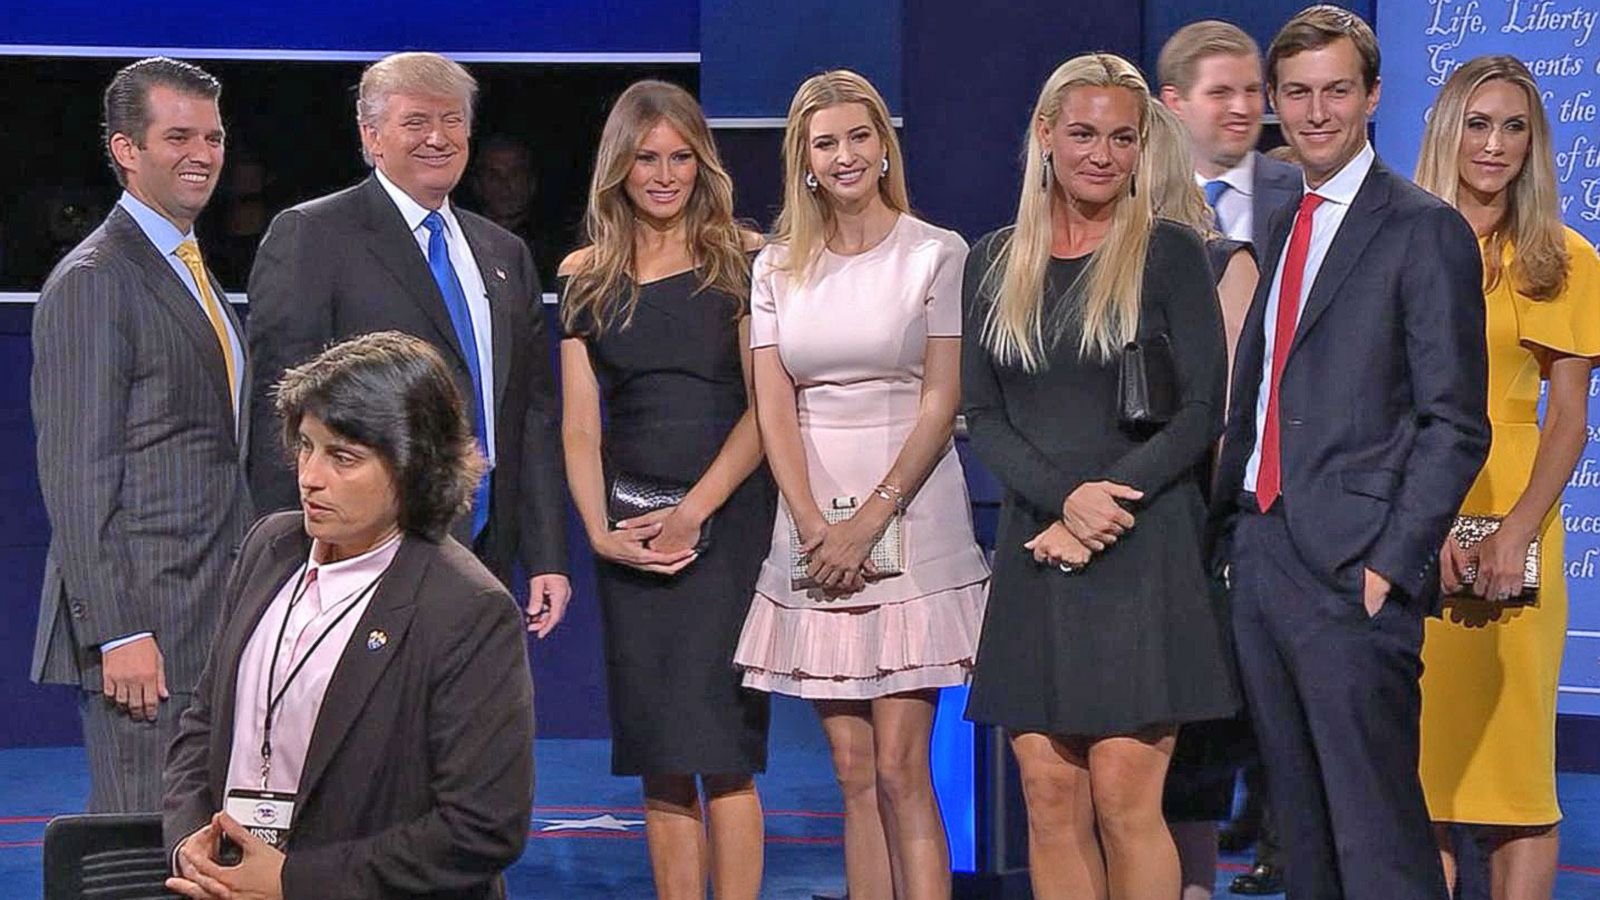 VIDEO: Friends and Family in Attendance at the Presidential Debate